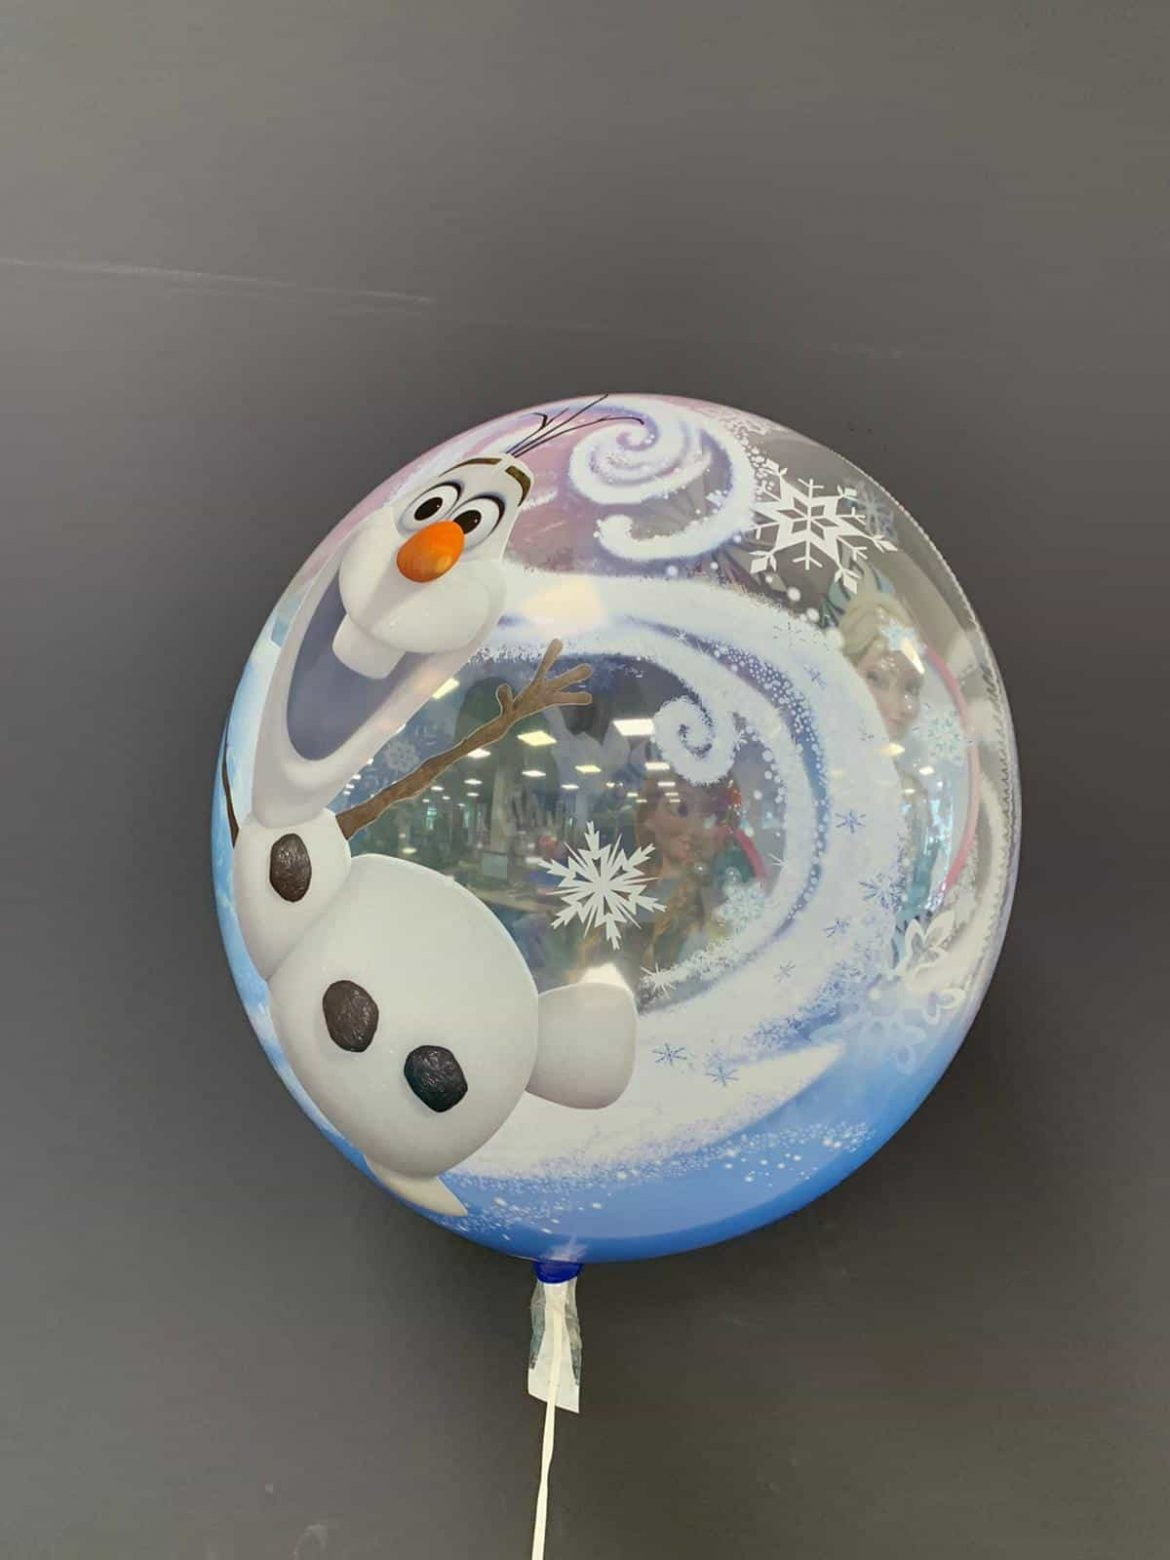 Frozen Ballon € 8,90 1